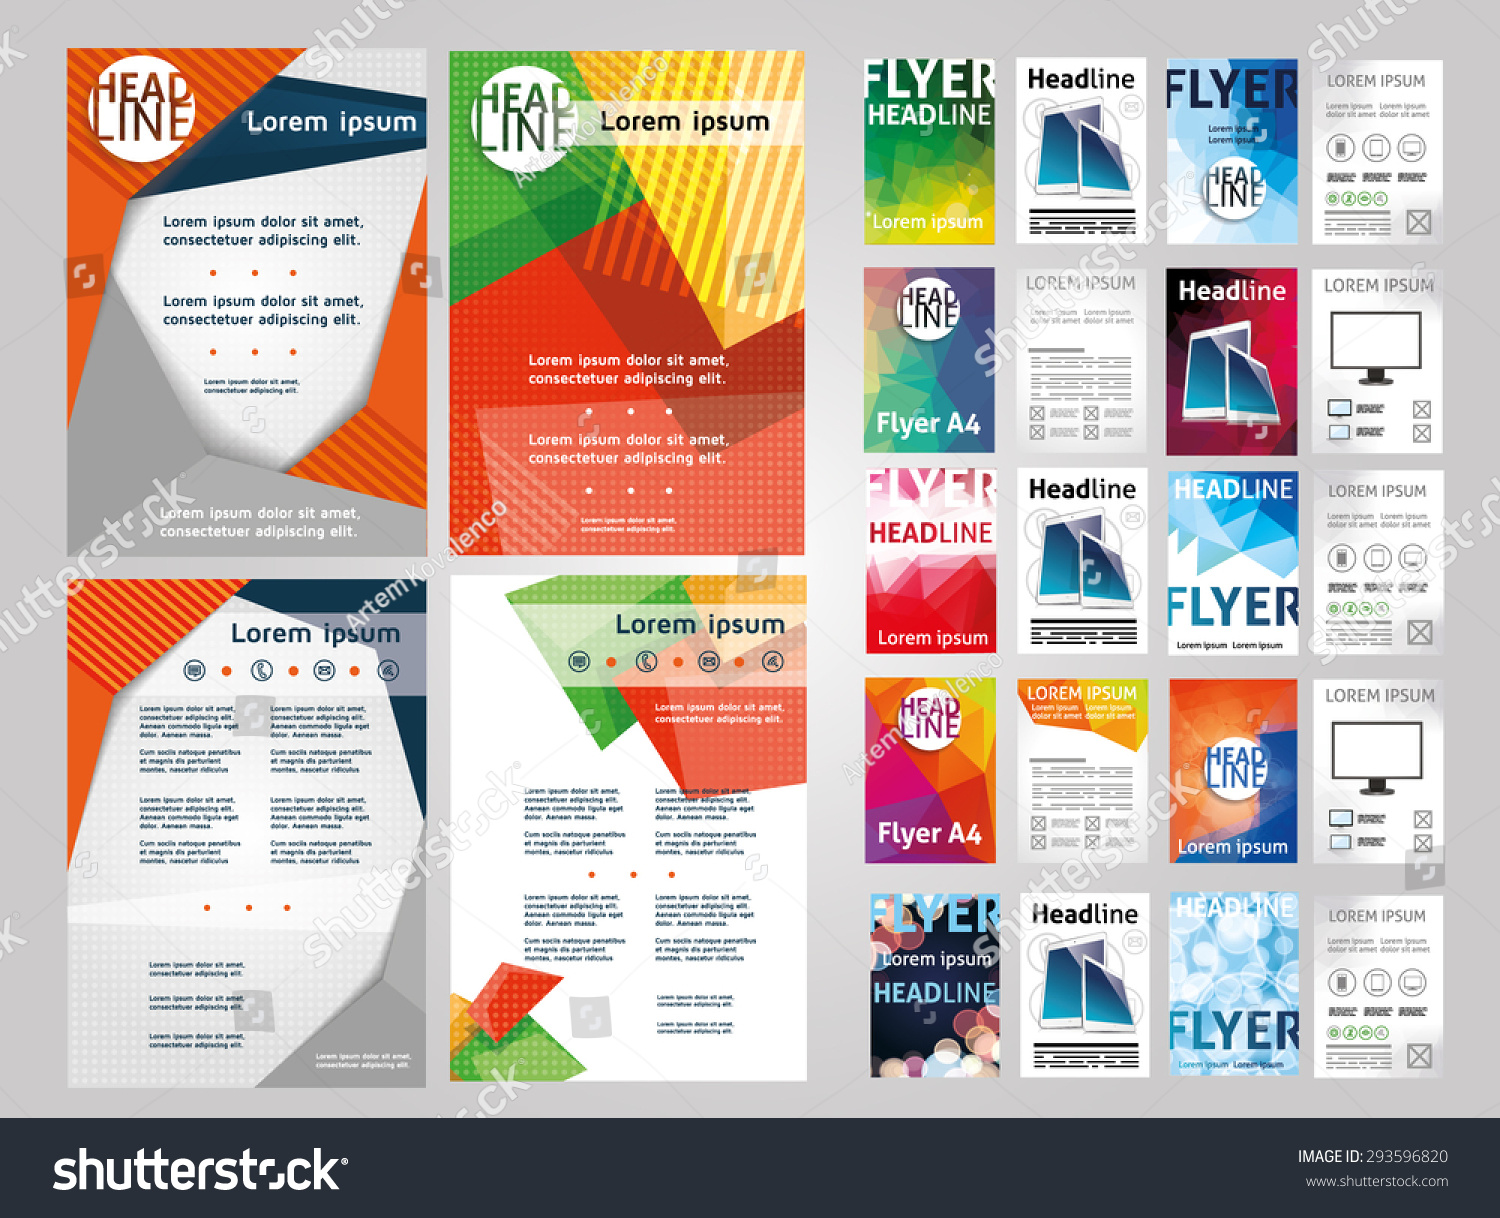 doc flyers examples marketing examples flyers brochure doc690928 flyers examples flyers examples